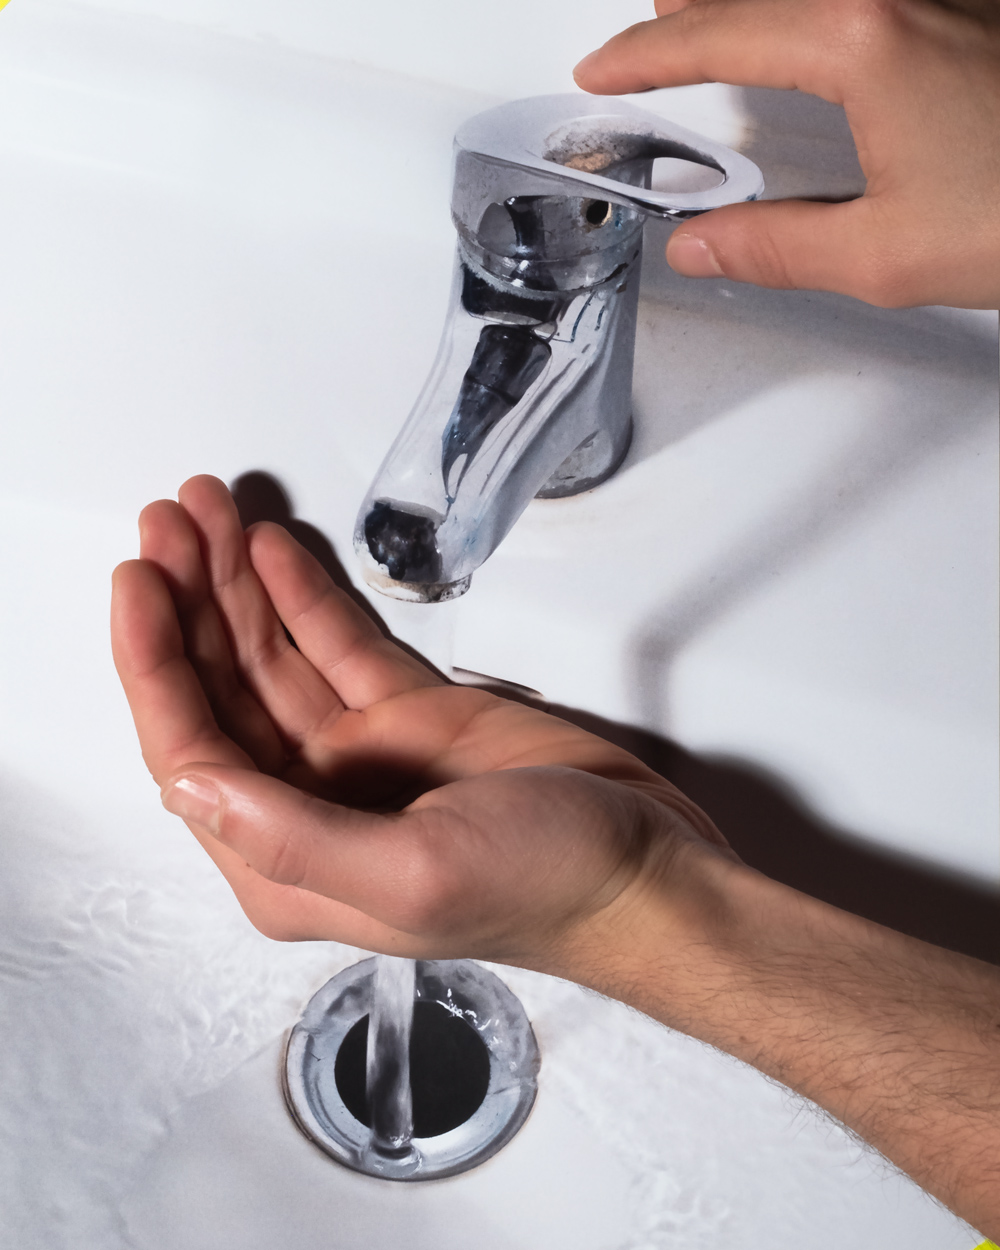 washing-hands.jpg